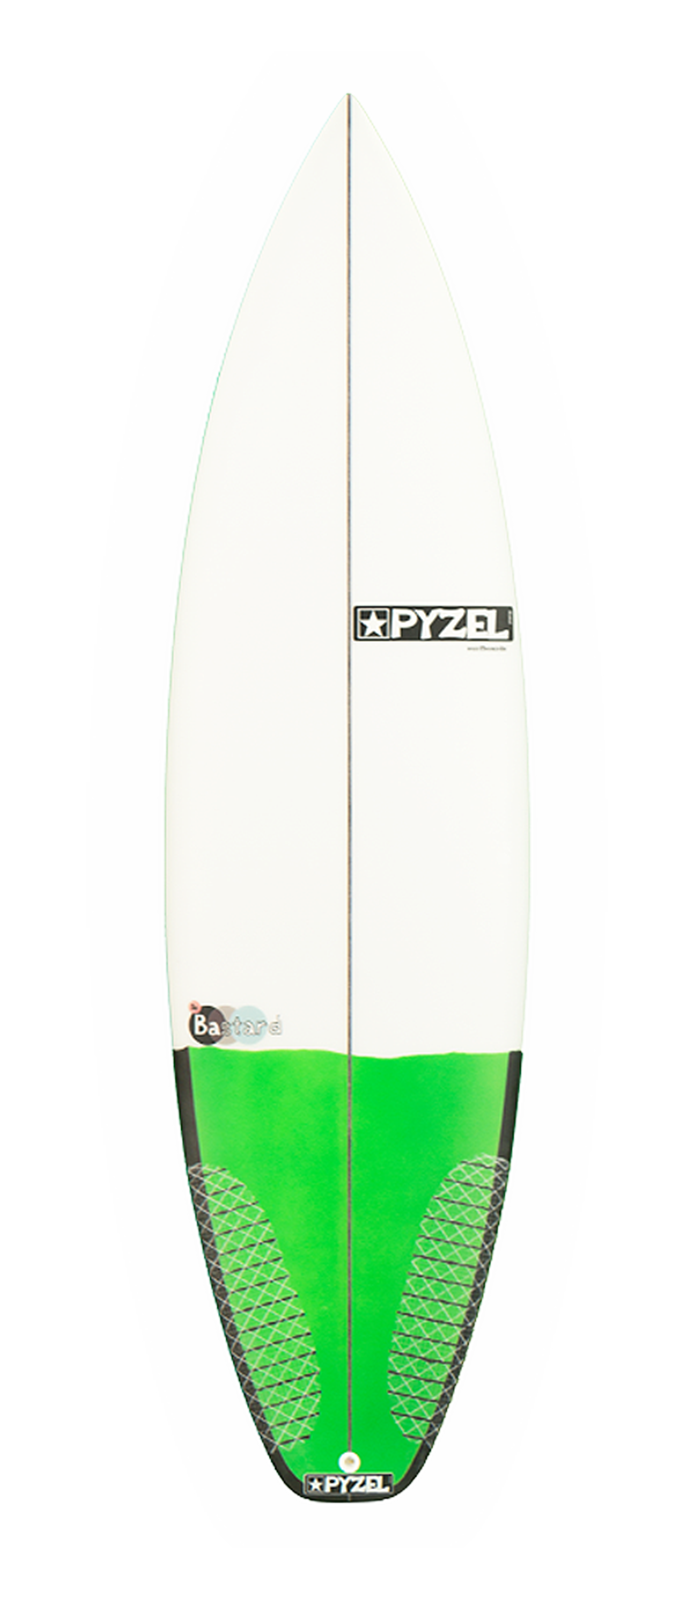 THE BASTARD surfboard model